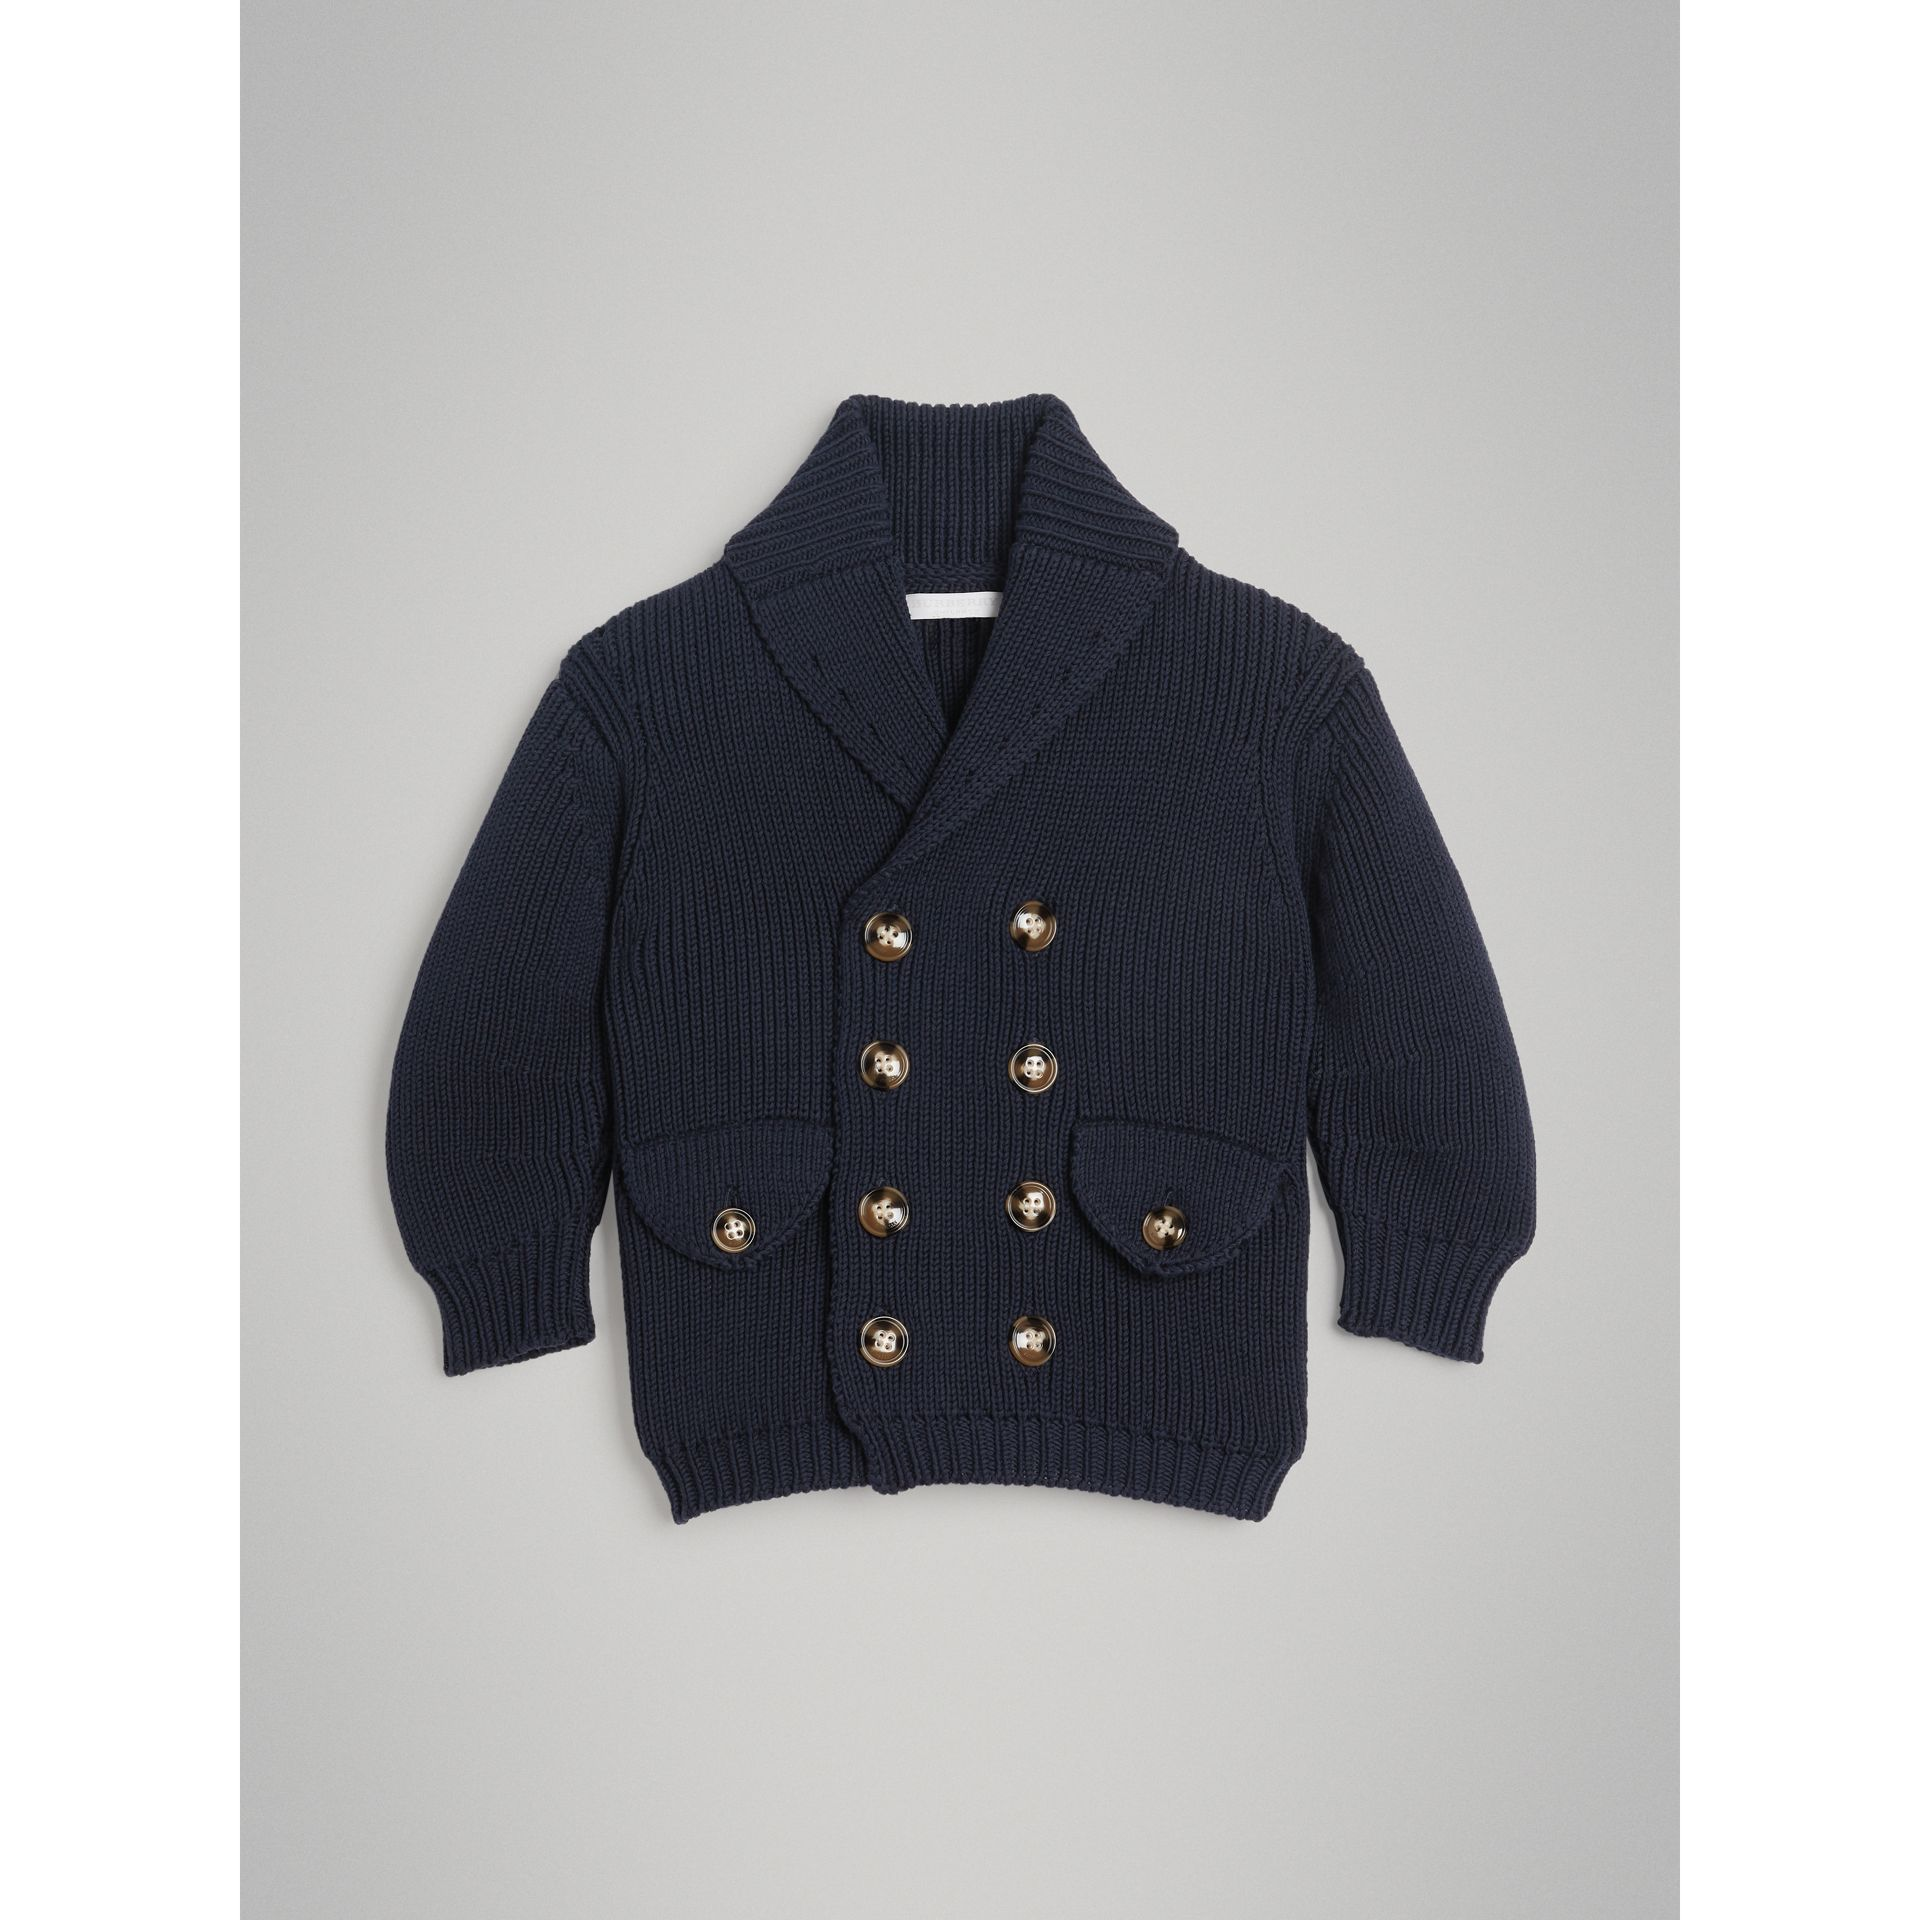 Cotton Knit Pea Coat Cardigan in Navy | Burberry - gallery image 0